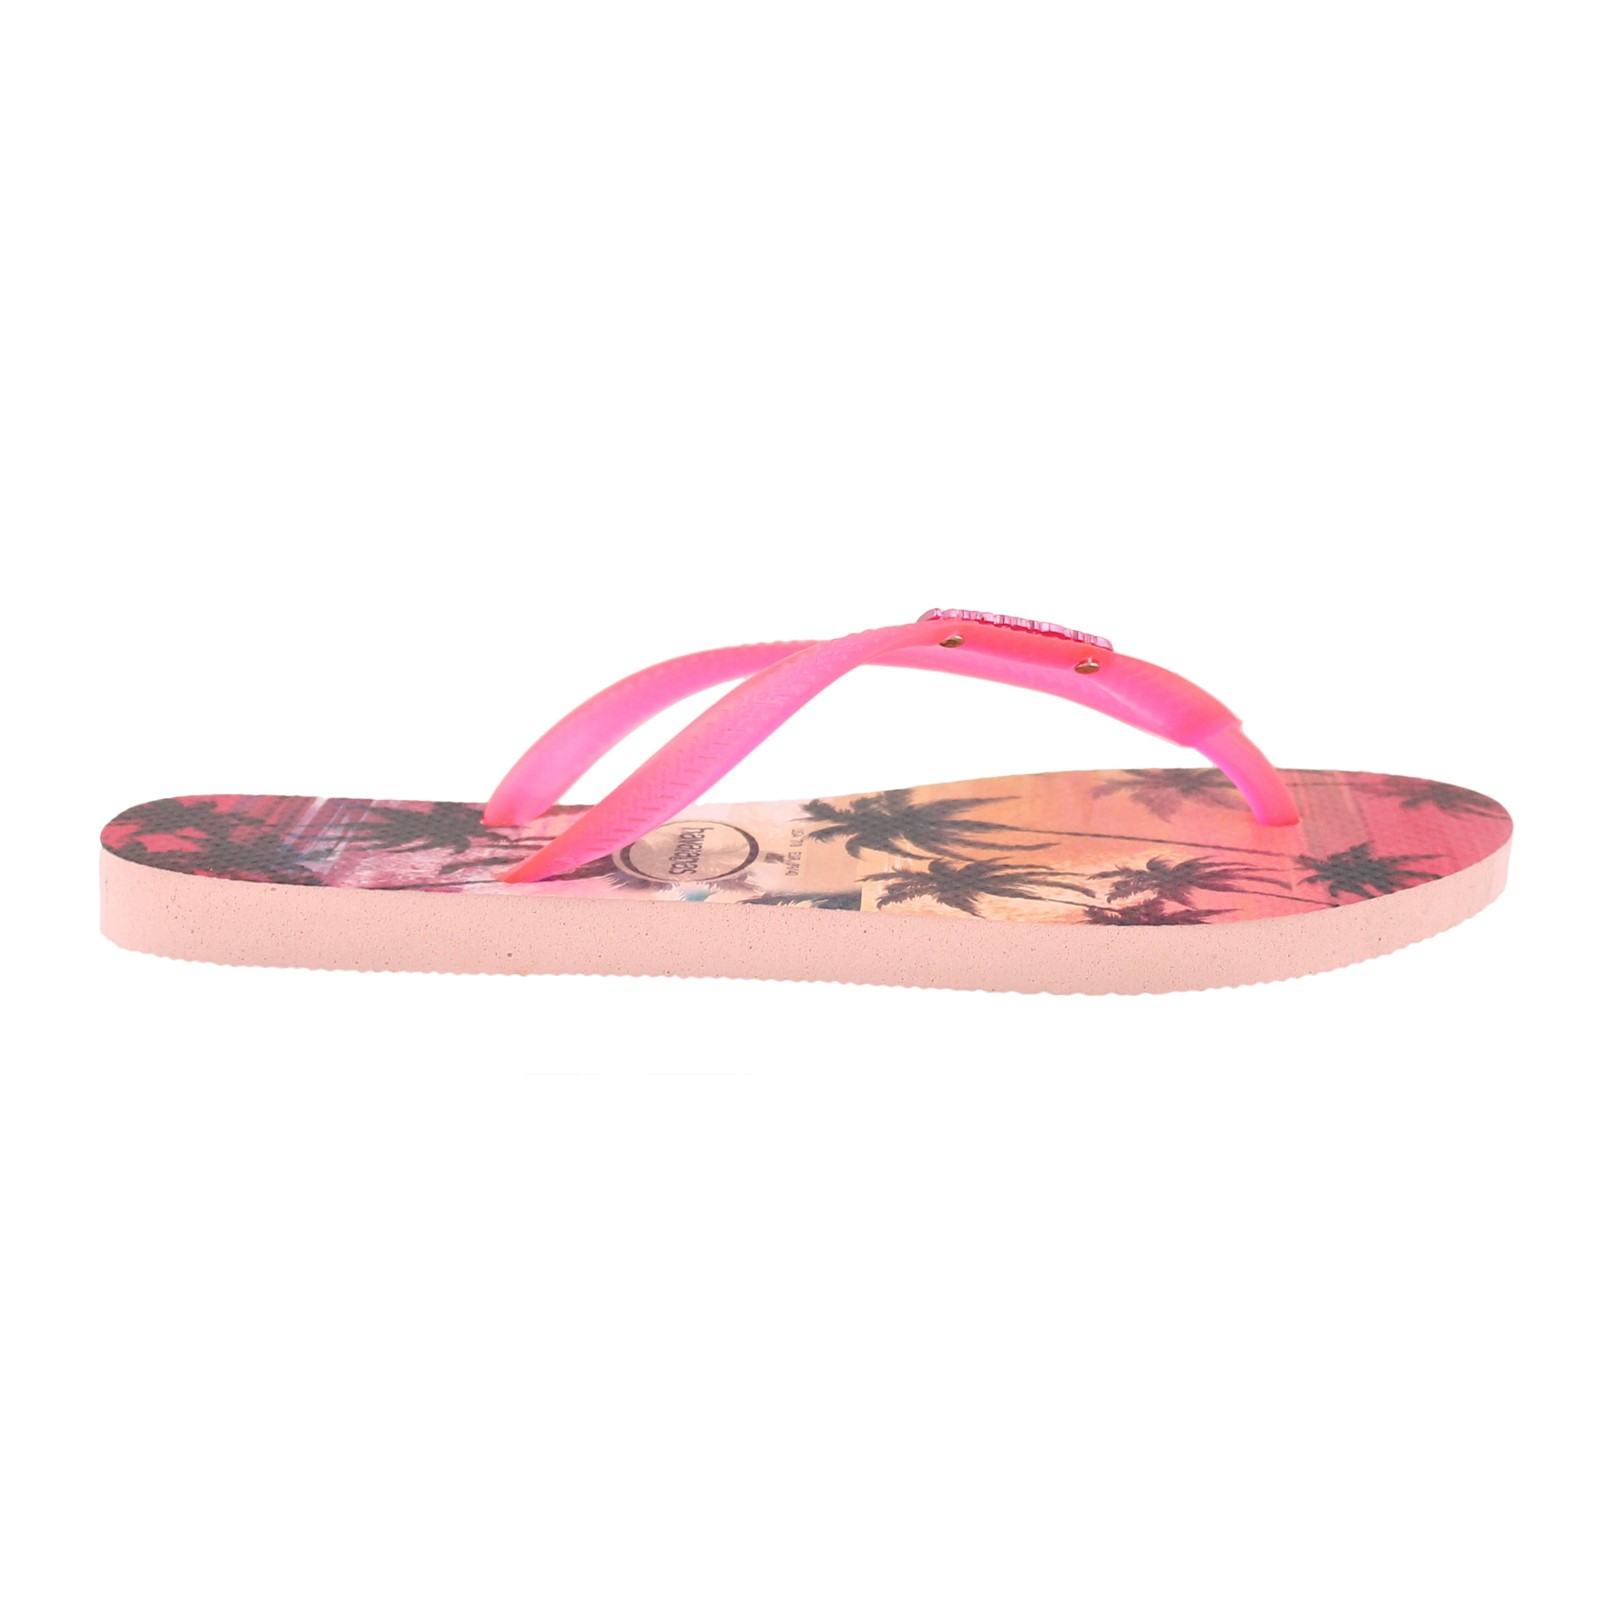 Ladies Havaianas Slim Paisage Thong Toe Post Holiday Summer Sandals All Sizes